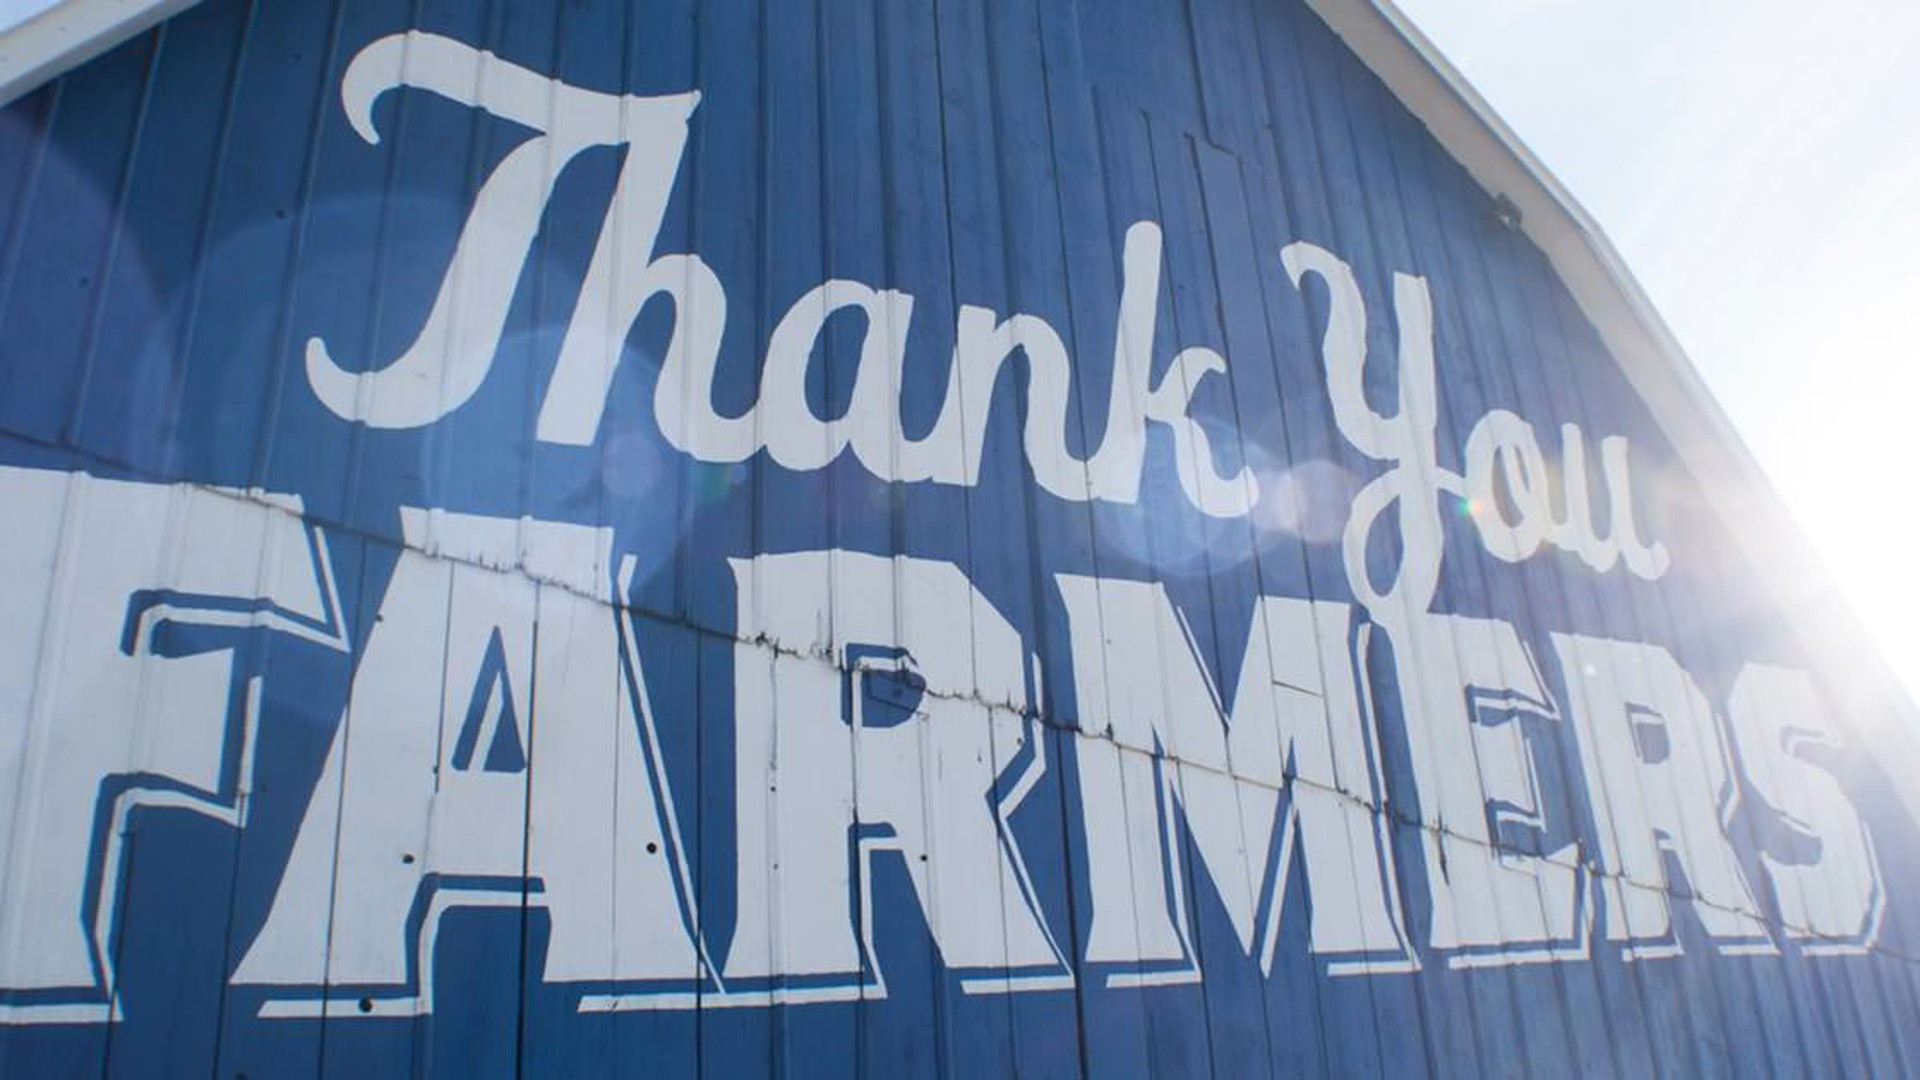 Culver's Thank You Farmers Project Donations Reach $2.5 Million